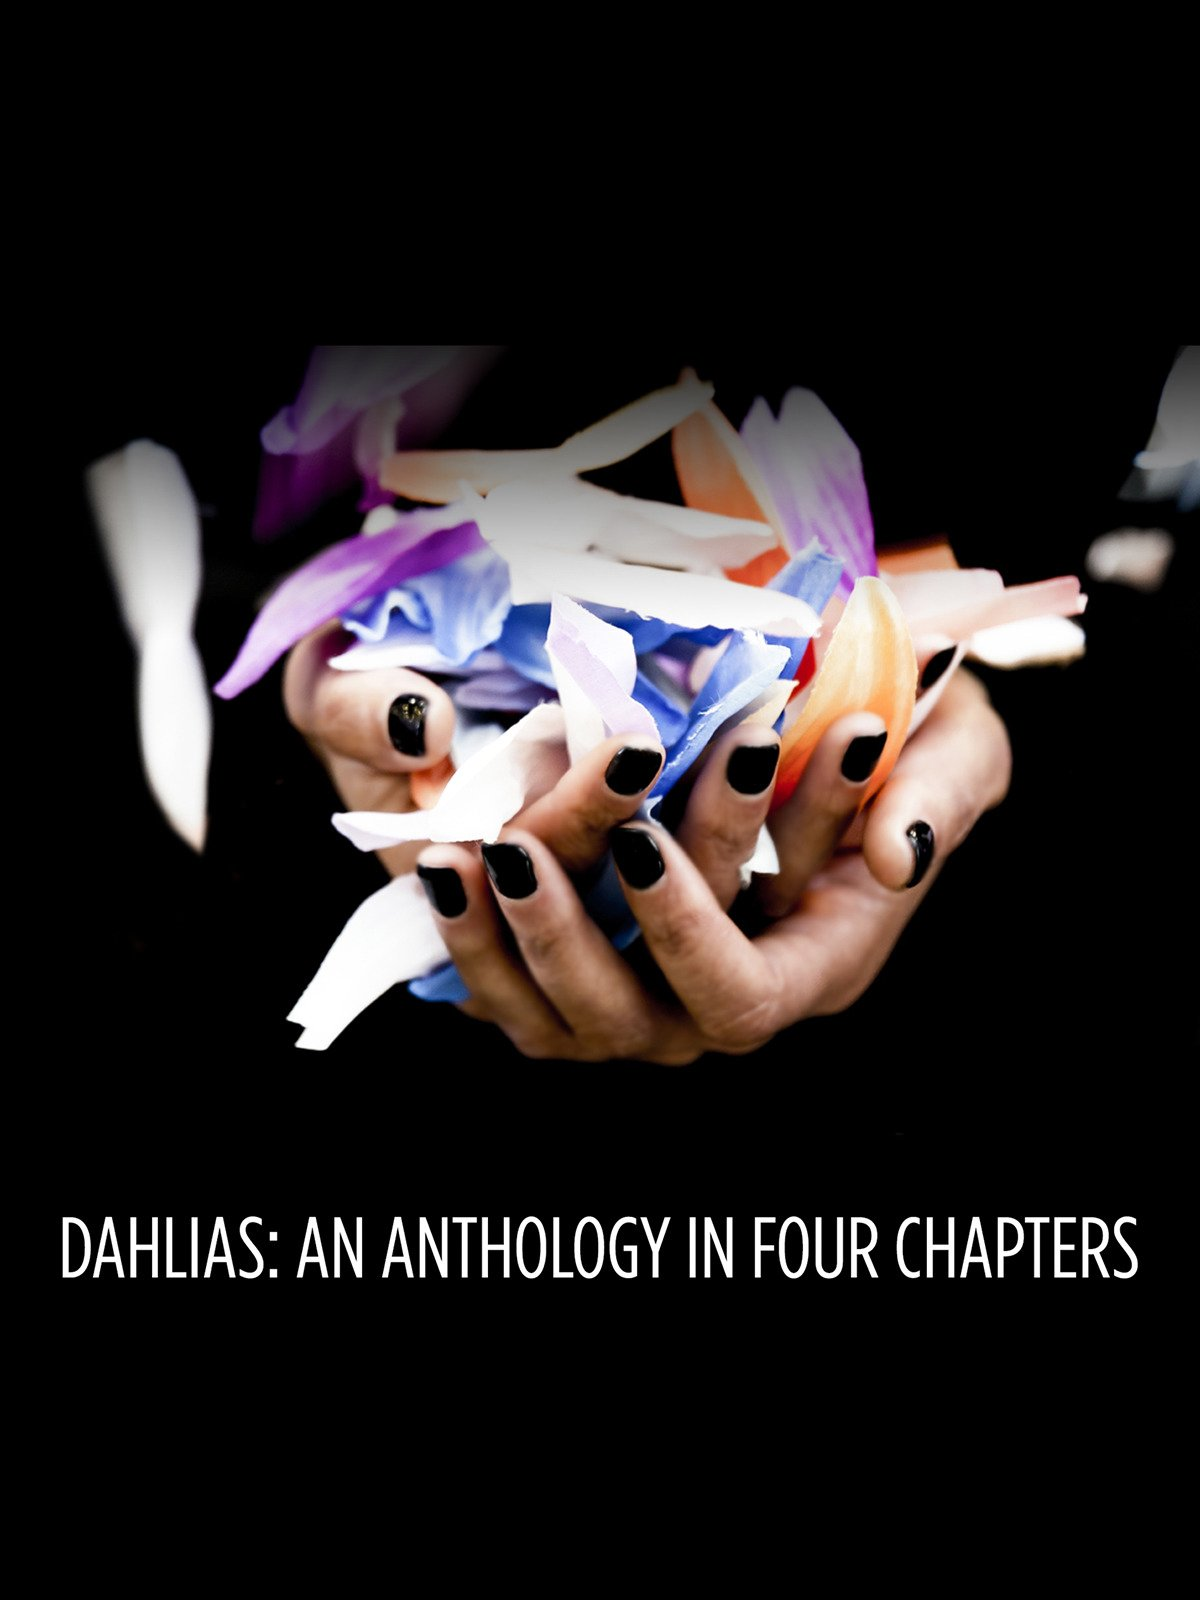 Dahlias: An Anthology in Four Chapters